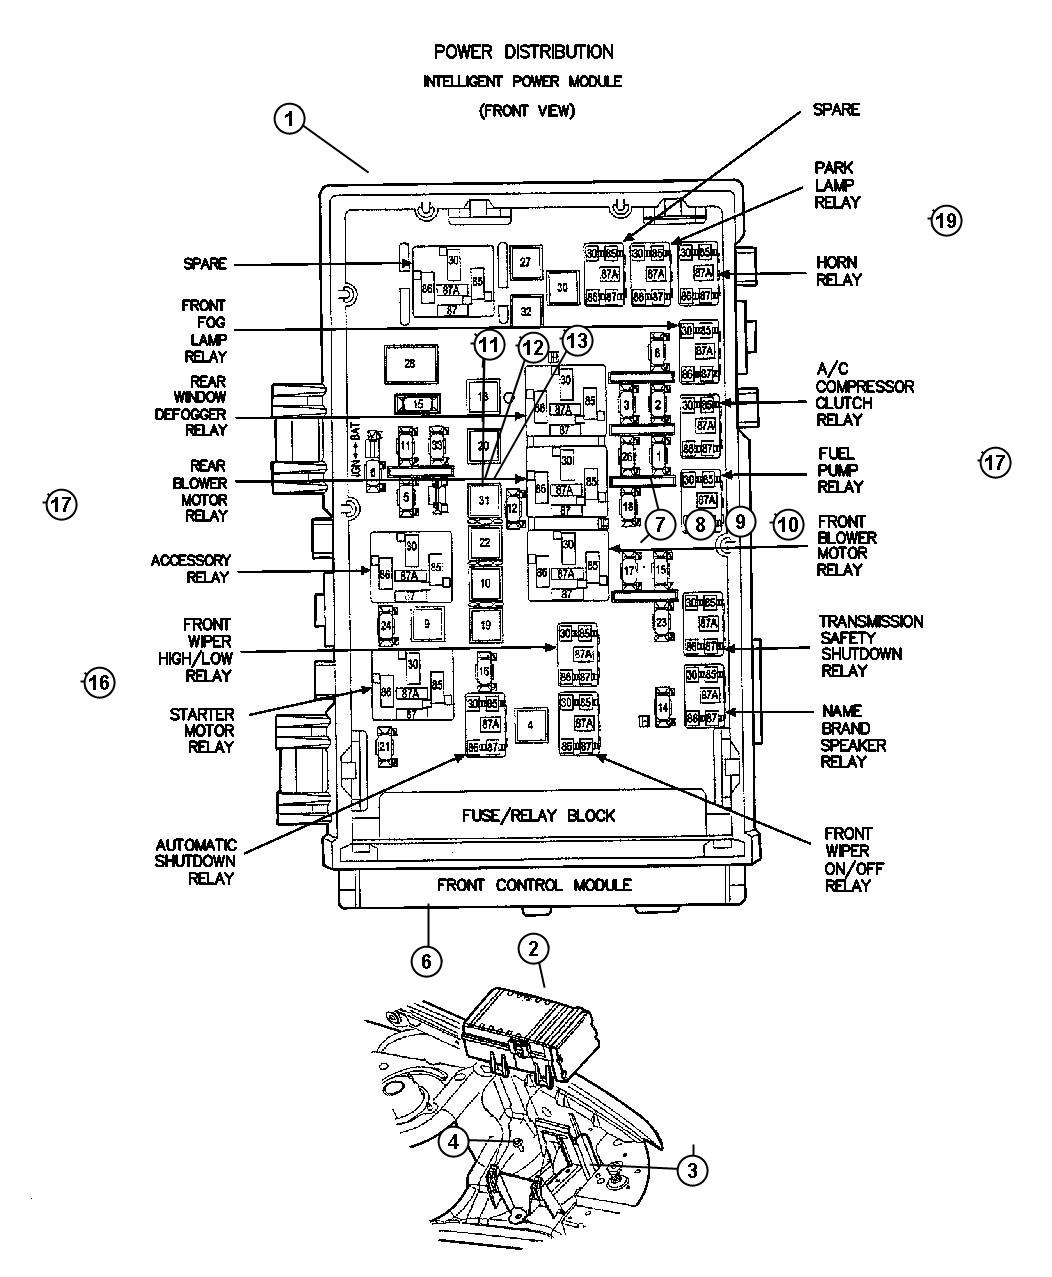 ShowAssembly on vw routan fuse box diagram